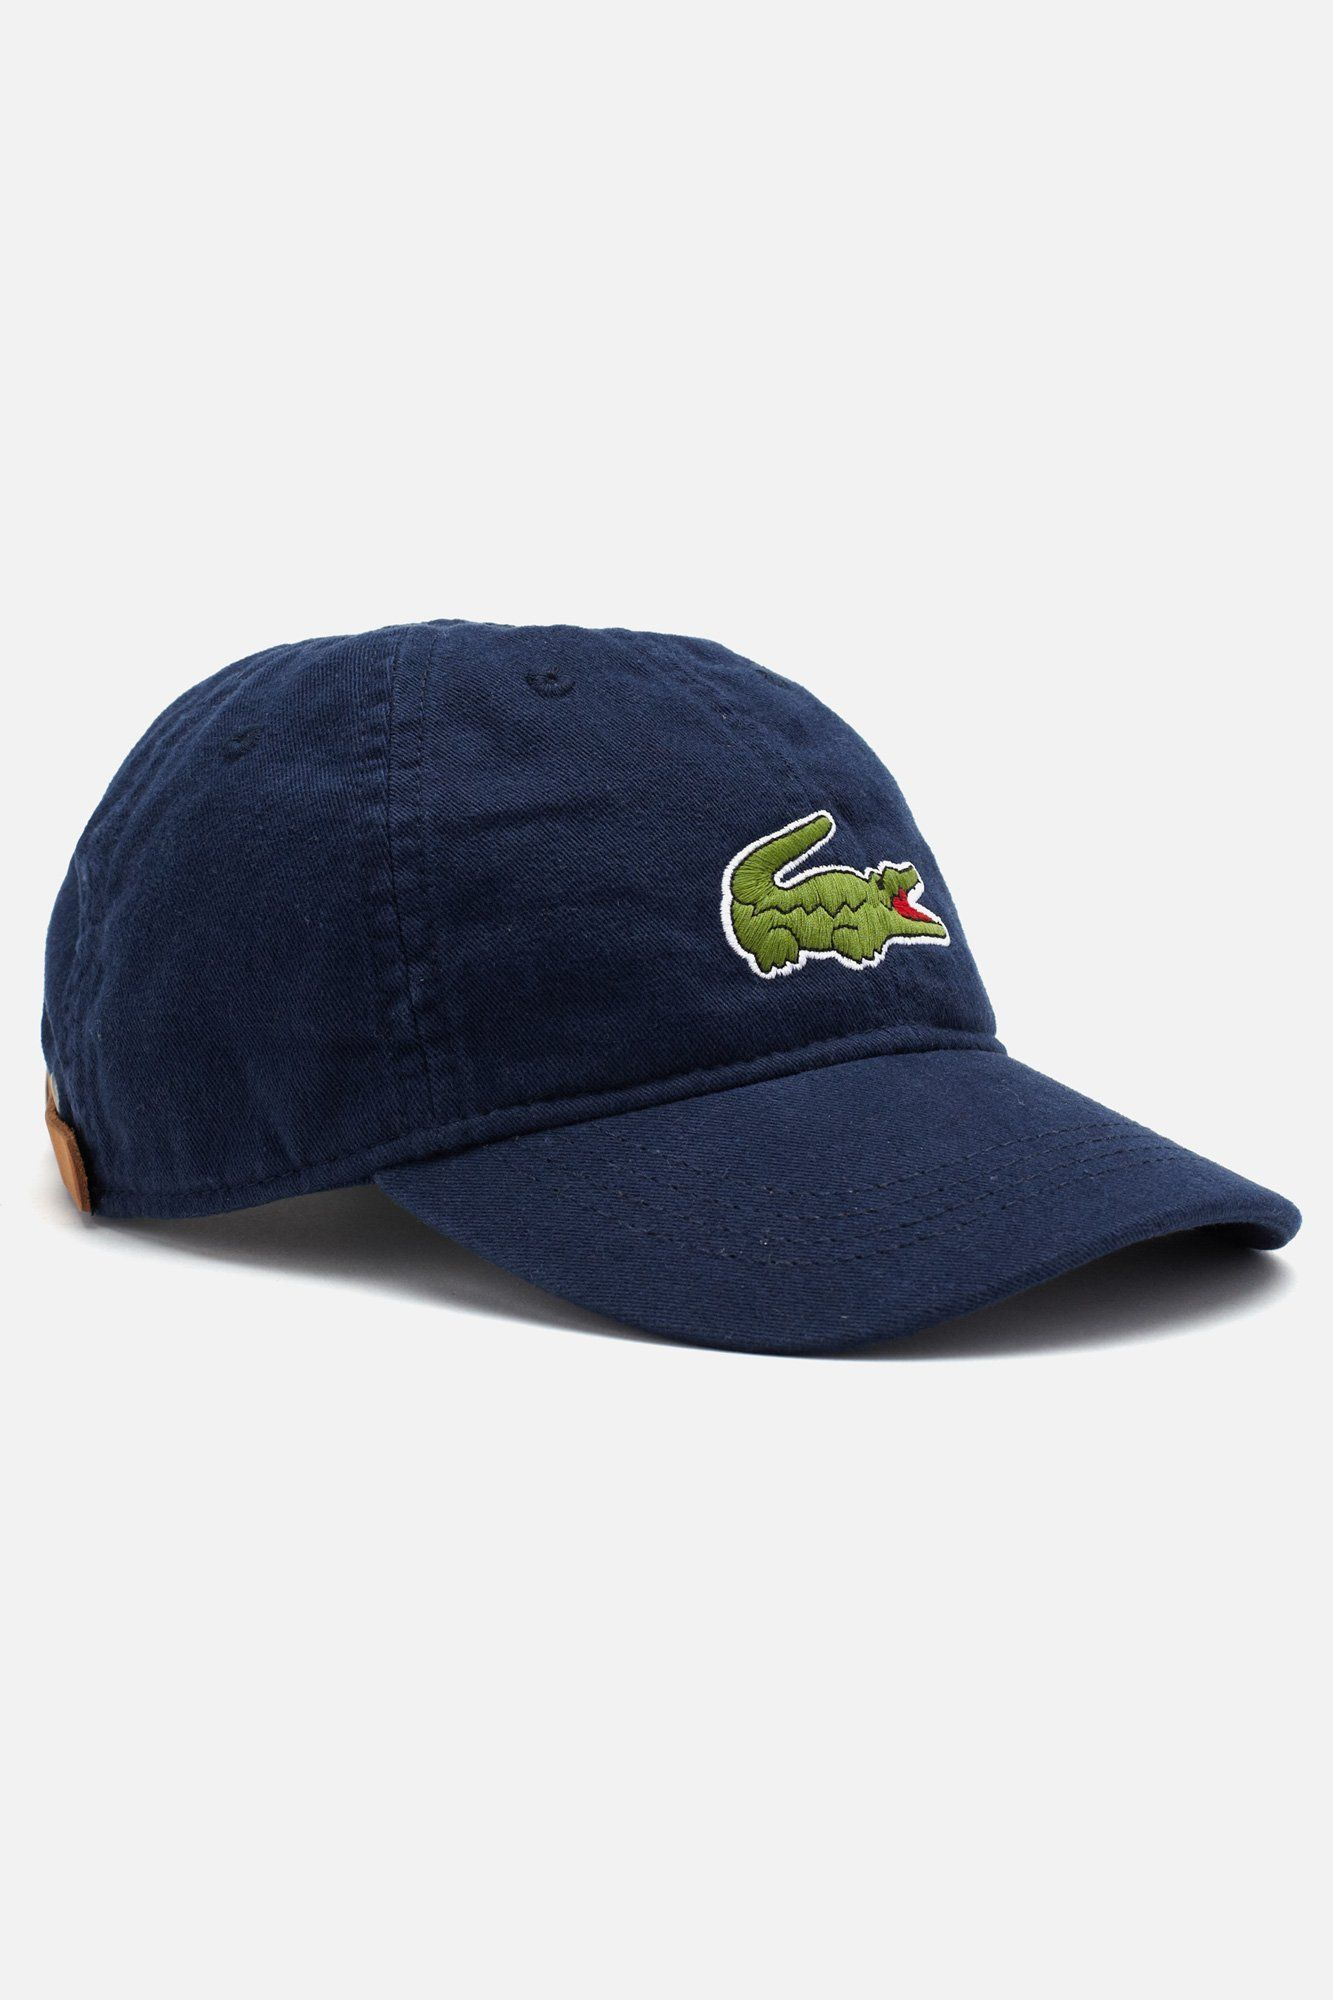 8876330eb Lacoste Boy s Gabaradine Large Croc Cap   Accessories